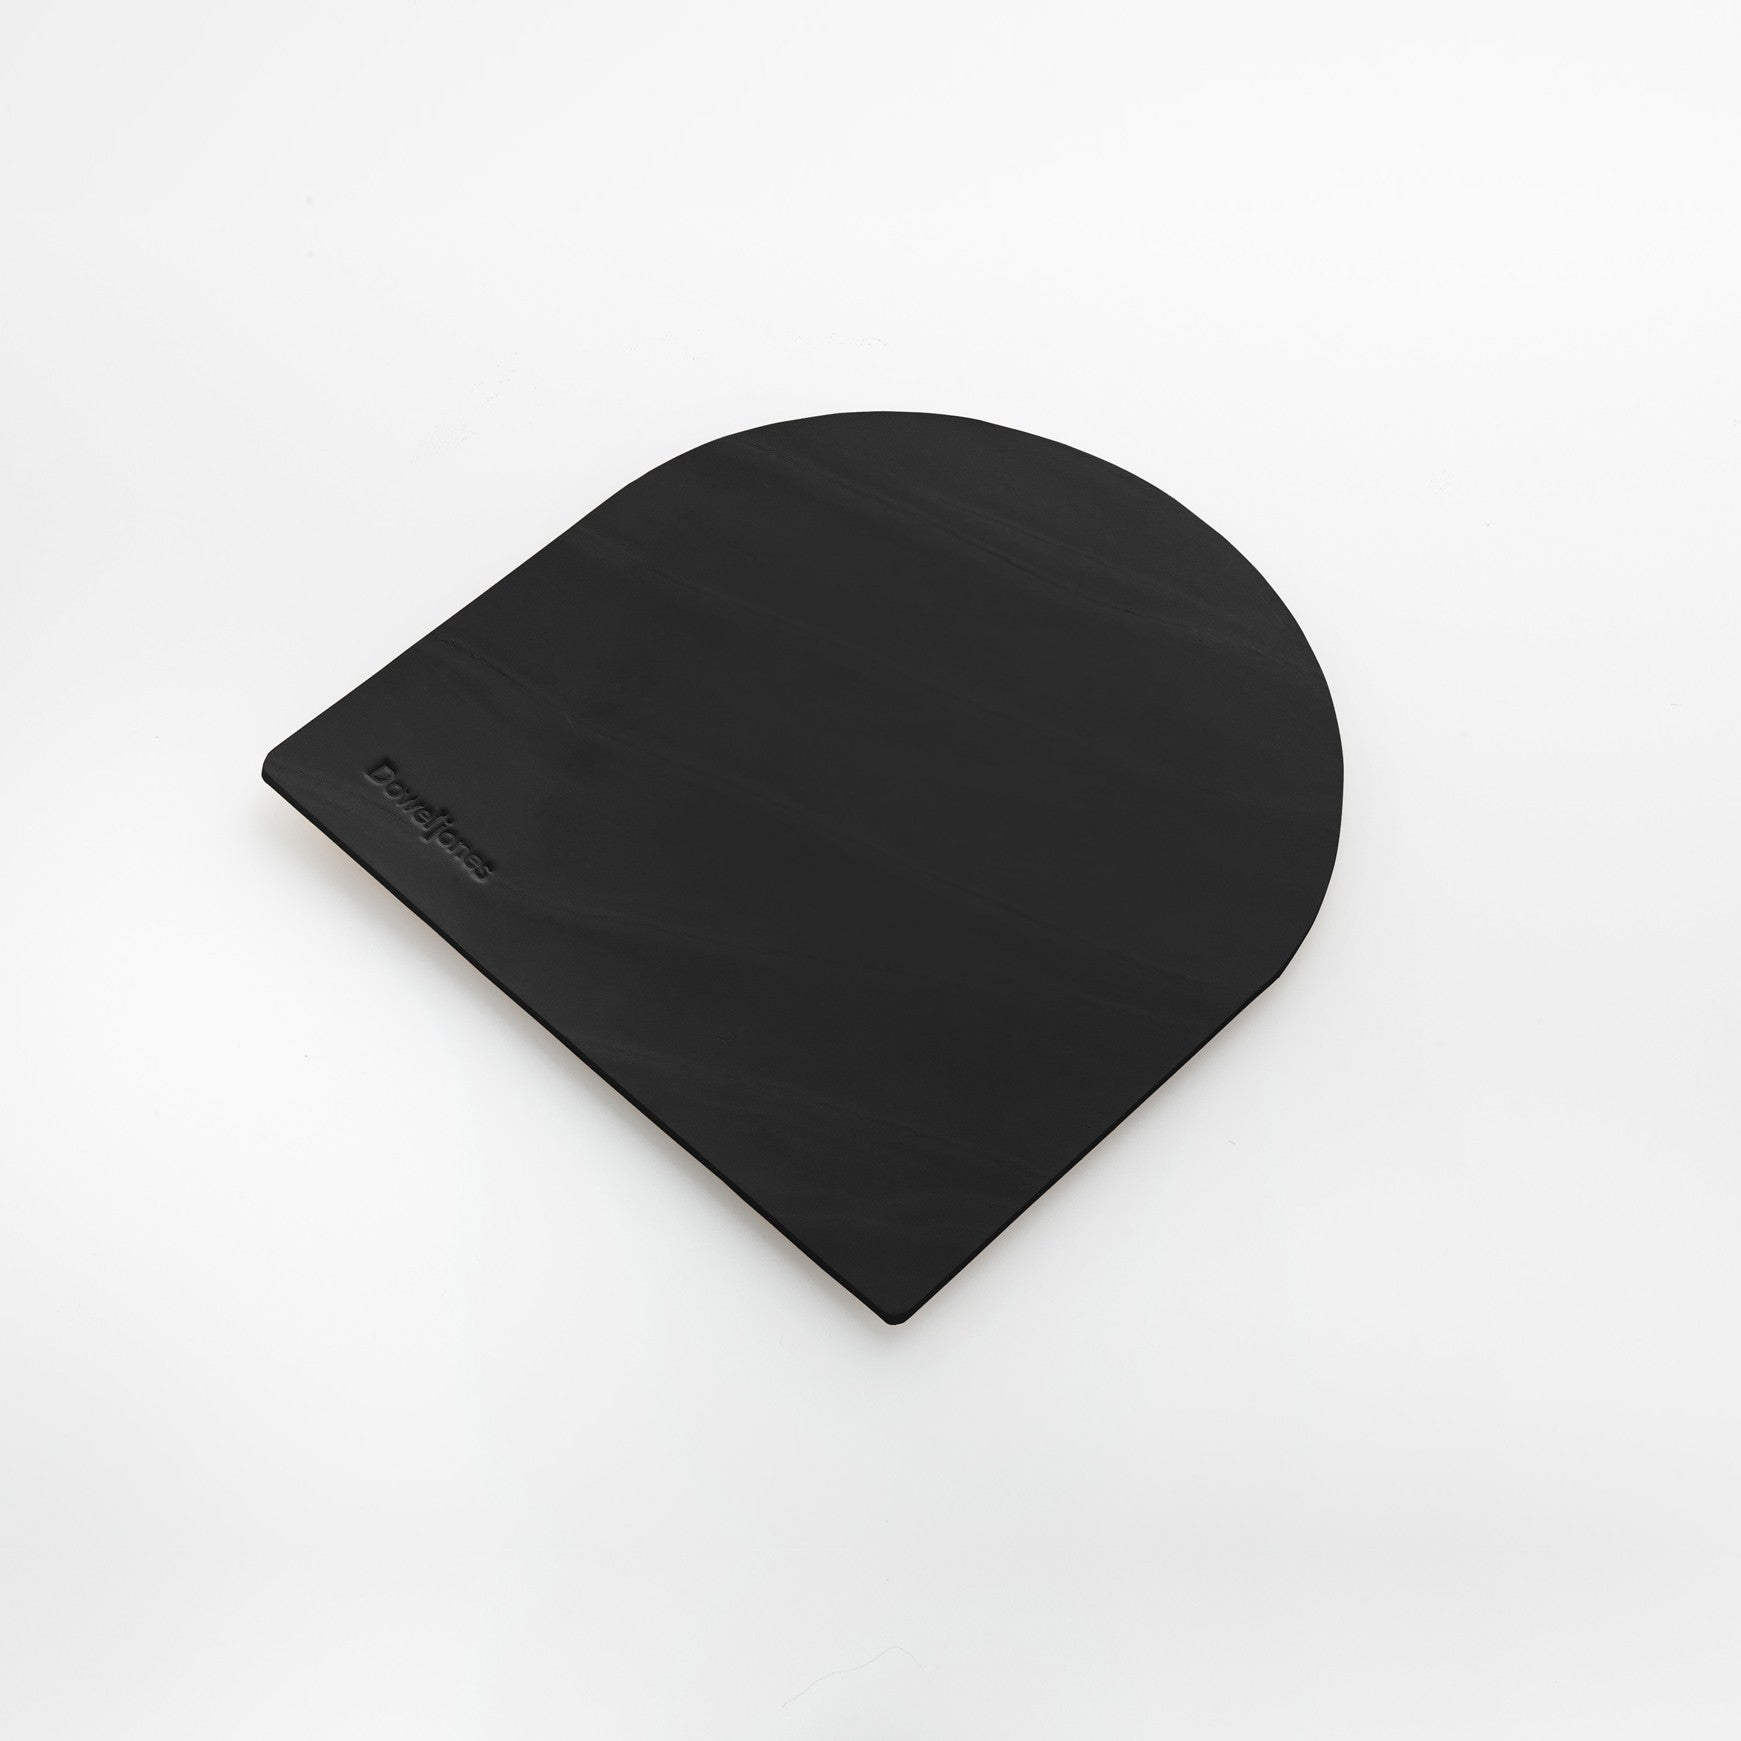 Tombstone Mousepad by Dowel Jones